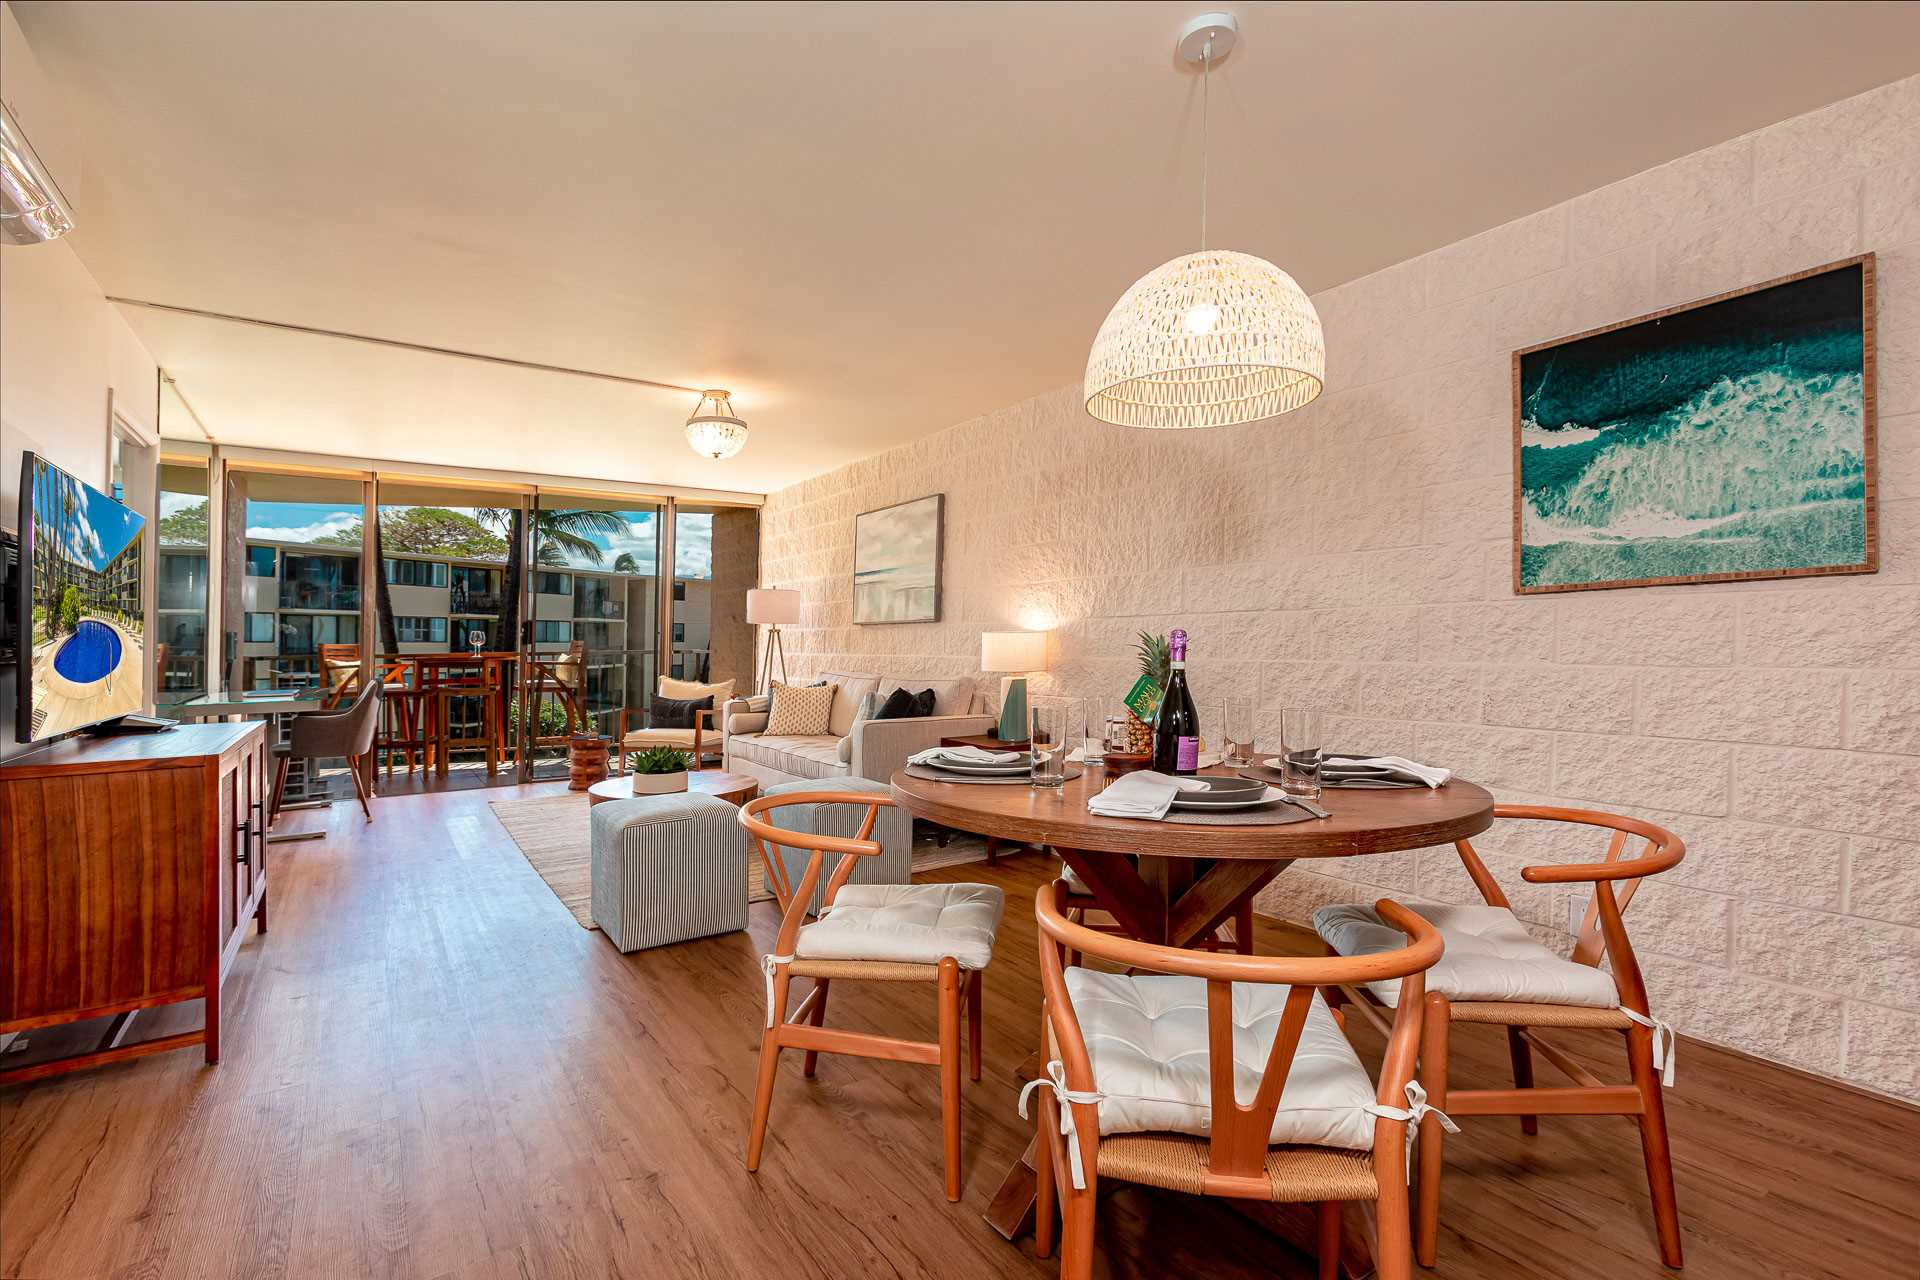 Living room into dining area